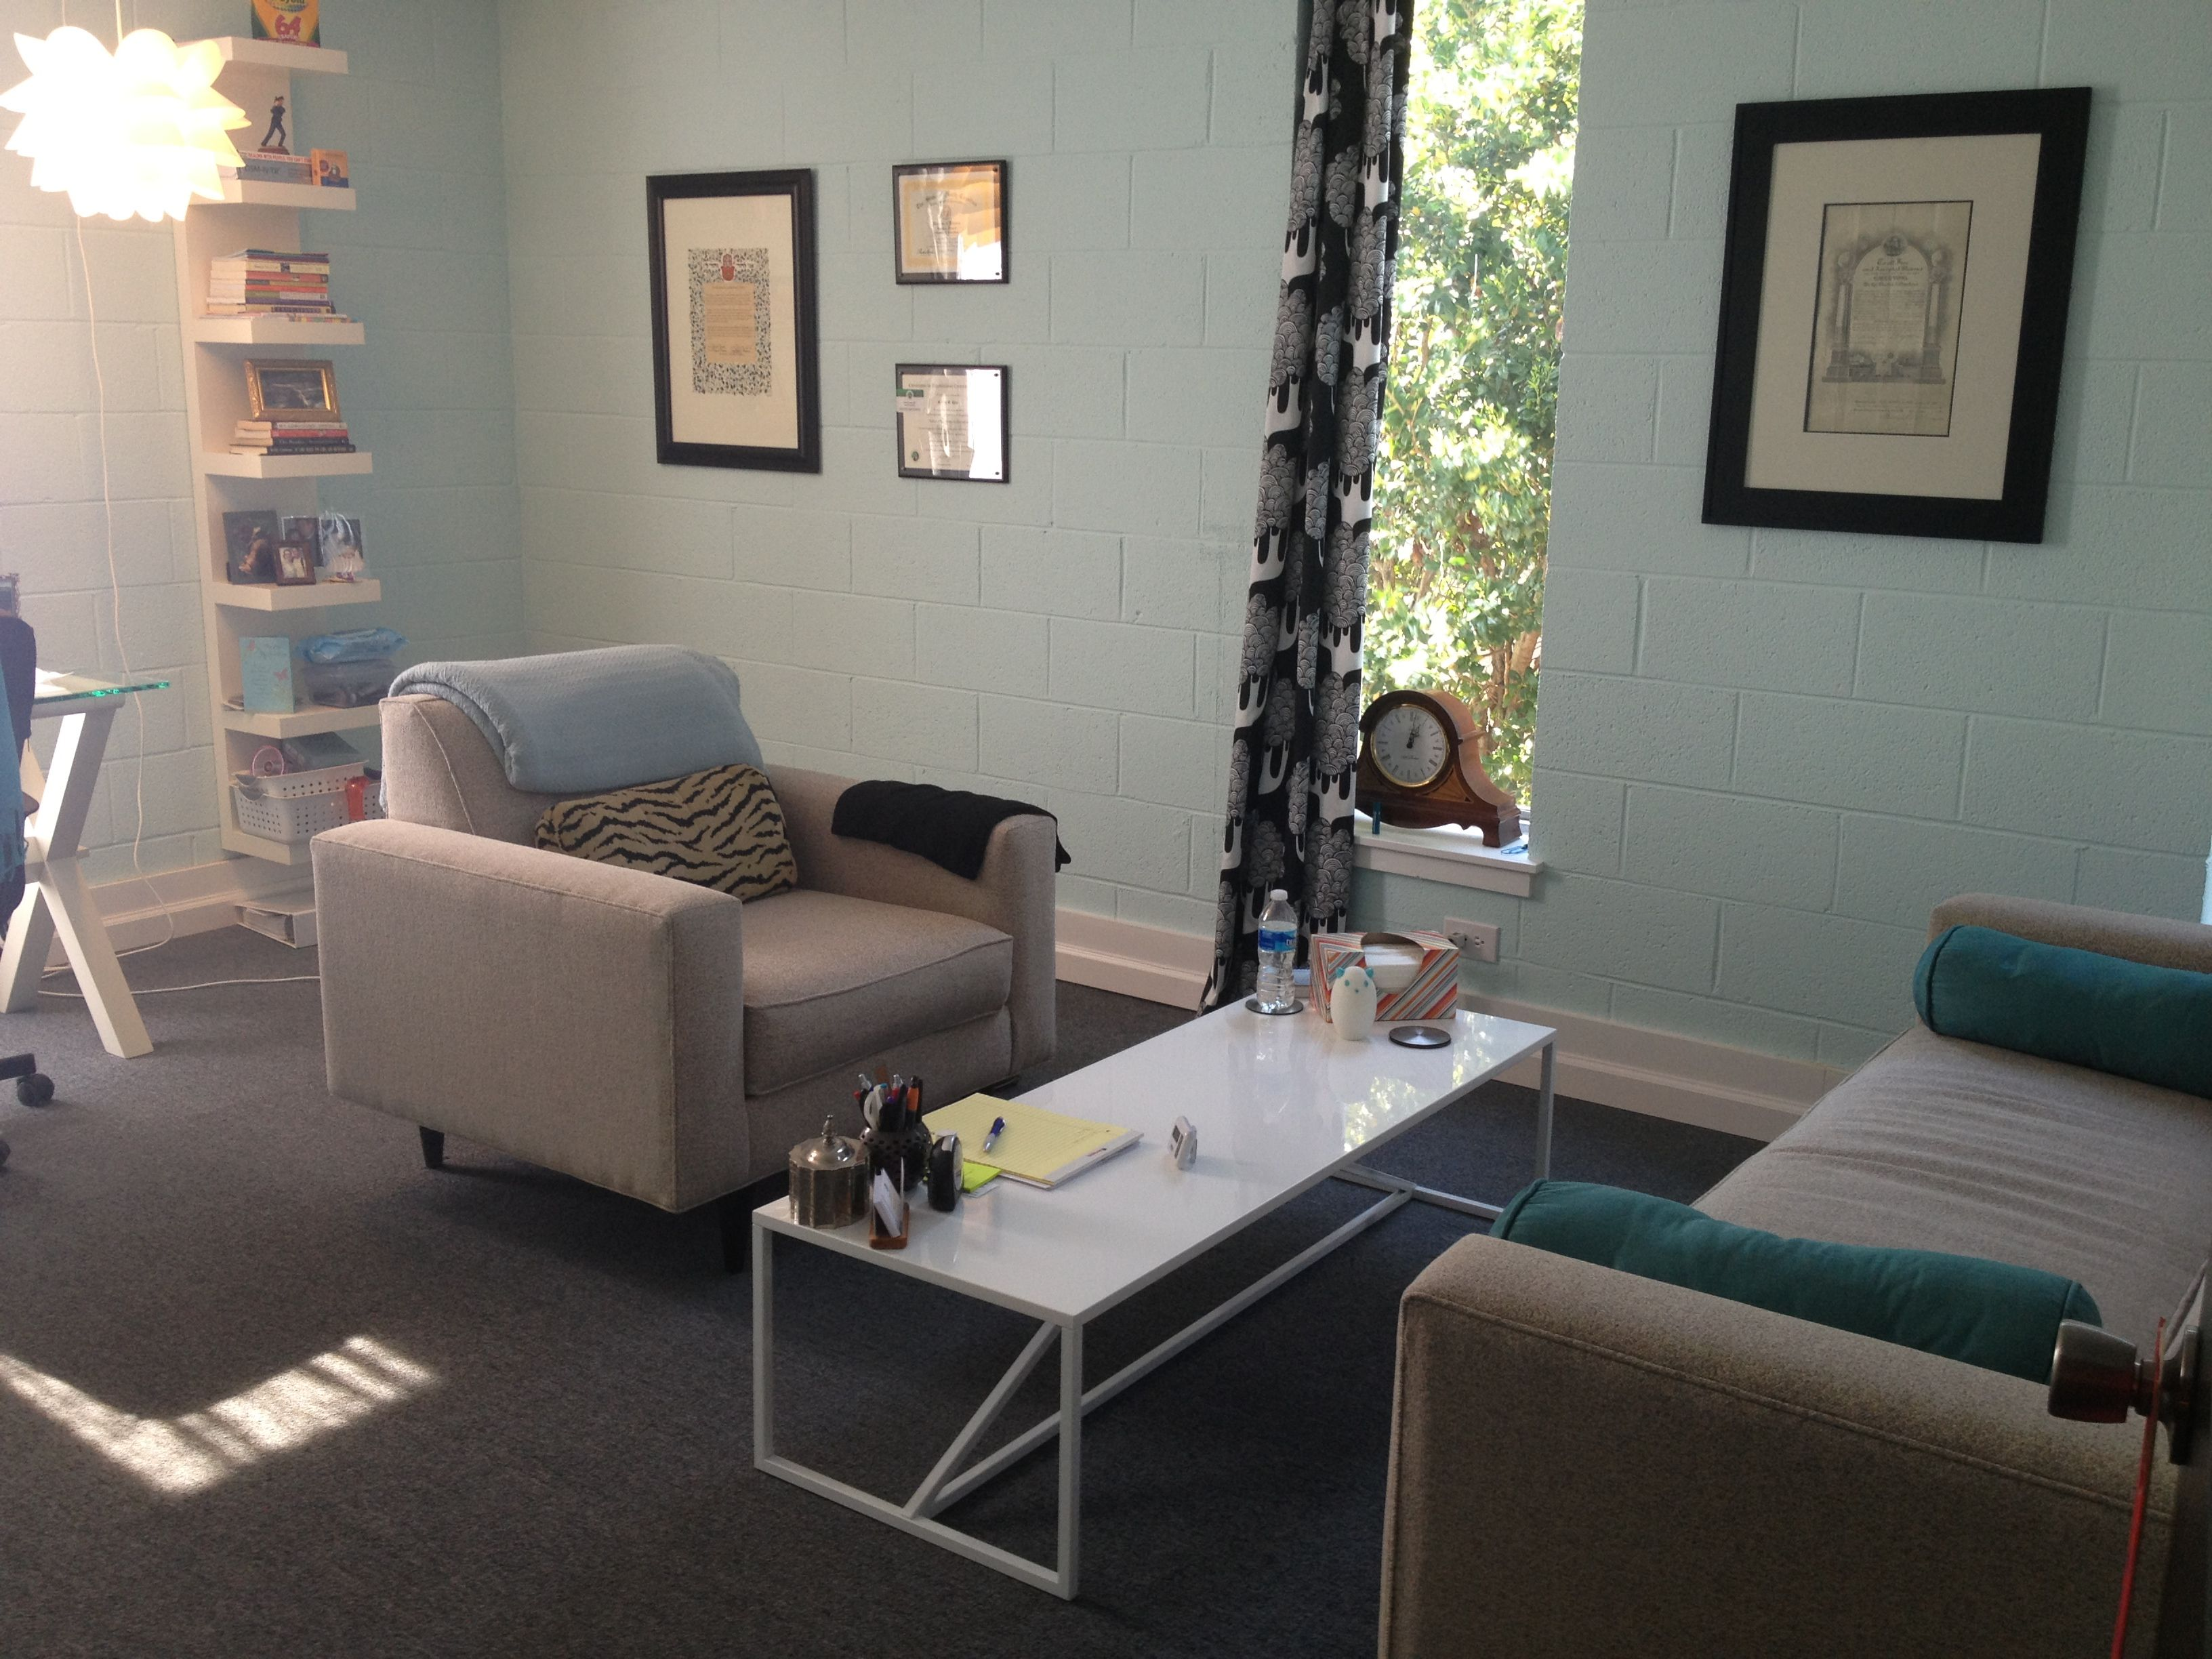 Merveilleux Counseling Office Decorating Ideas